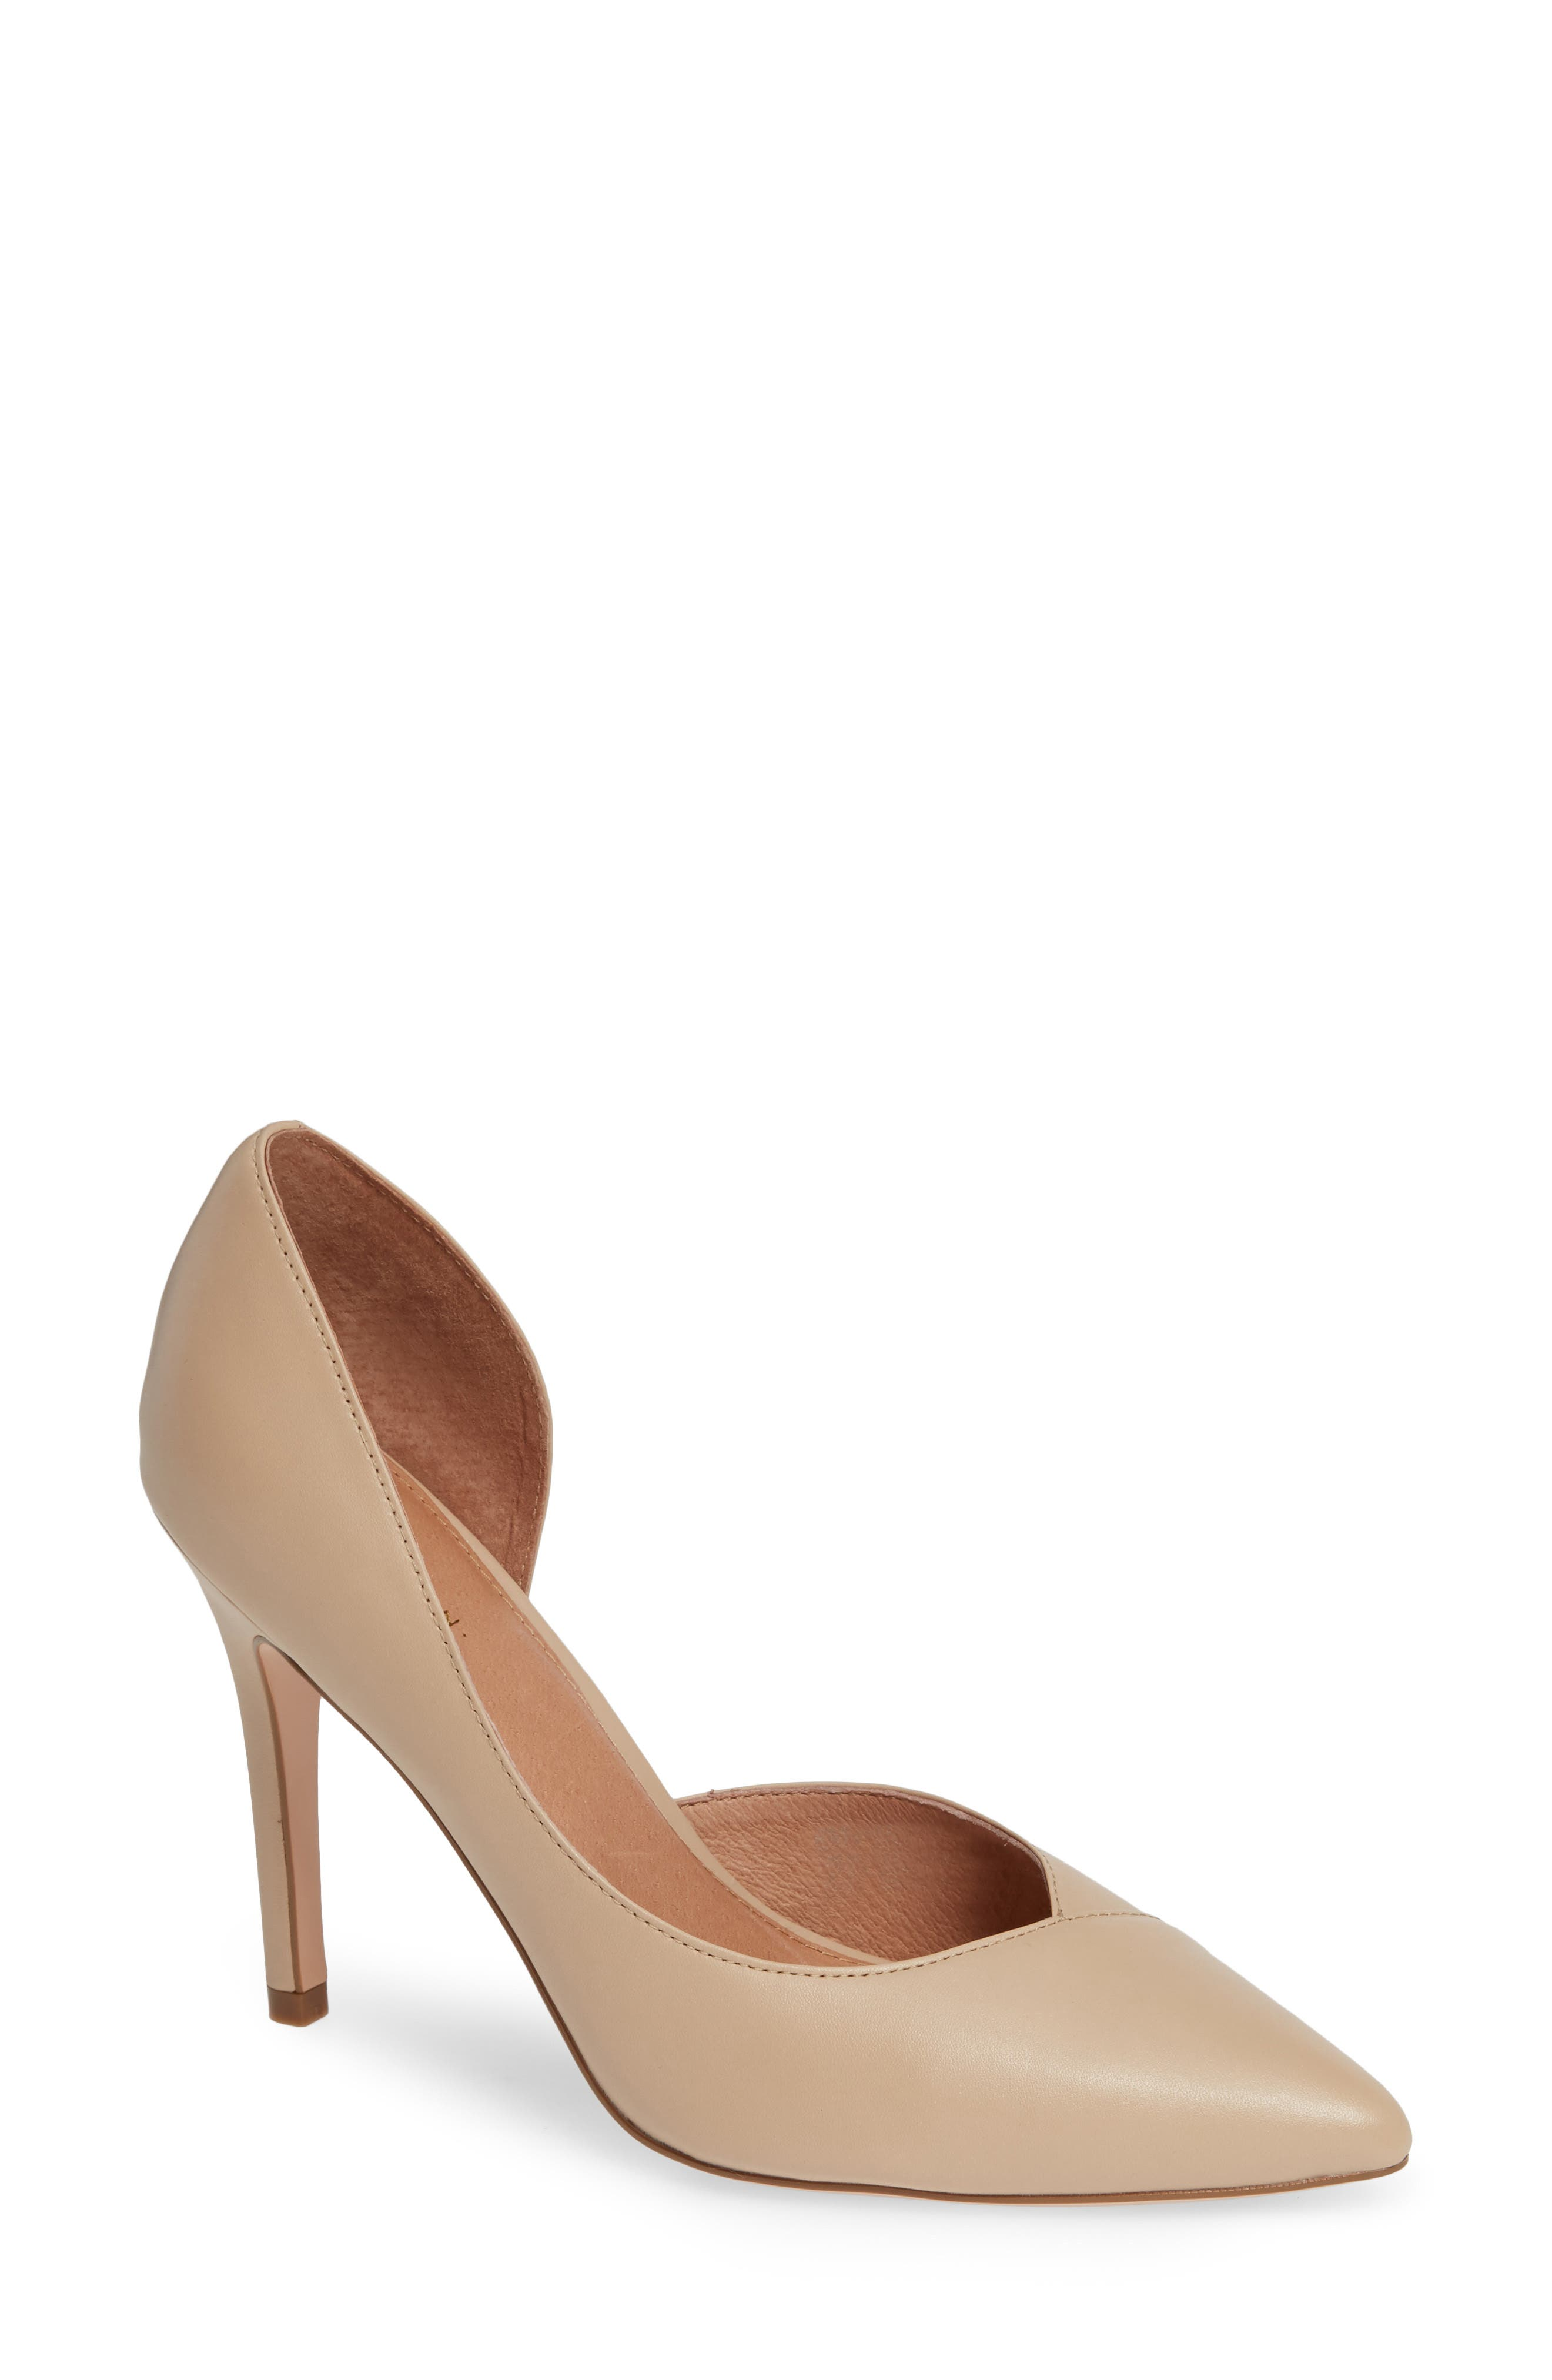 Autumn Pump,                         Main,                         color, NUDE LEATHER